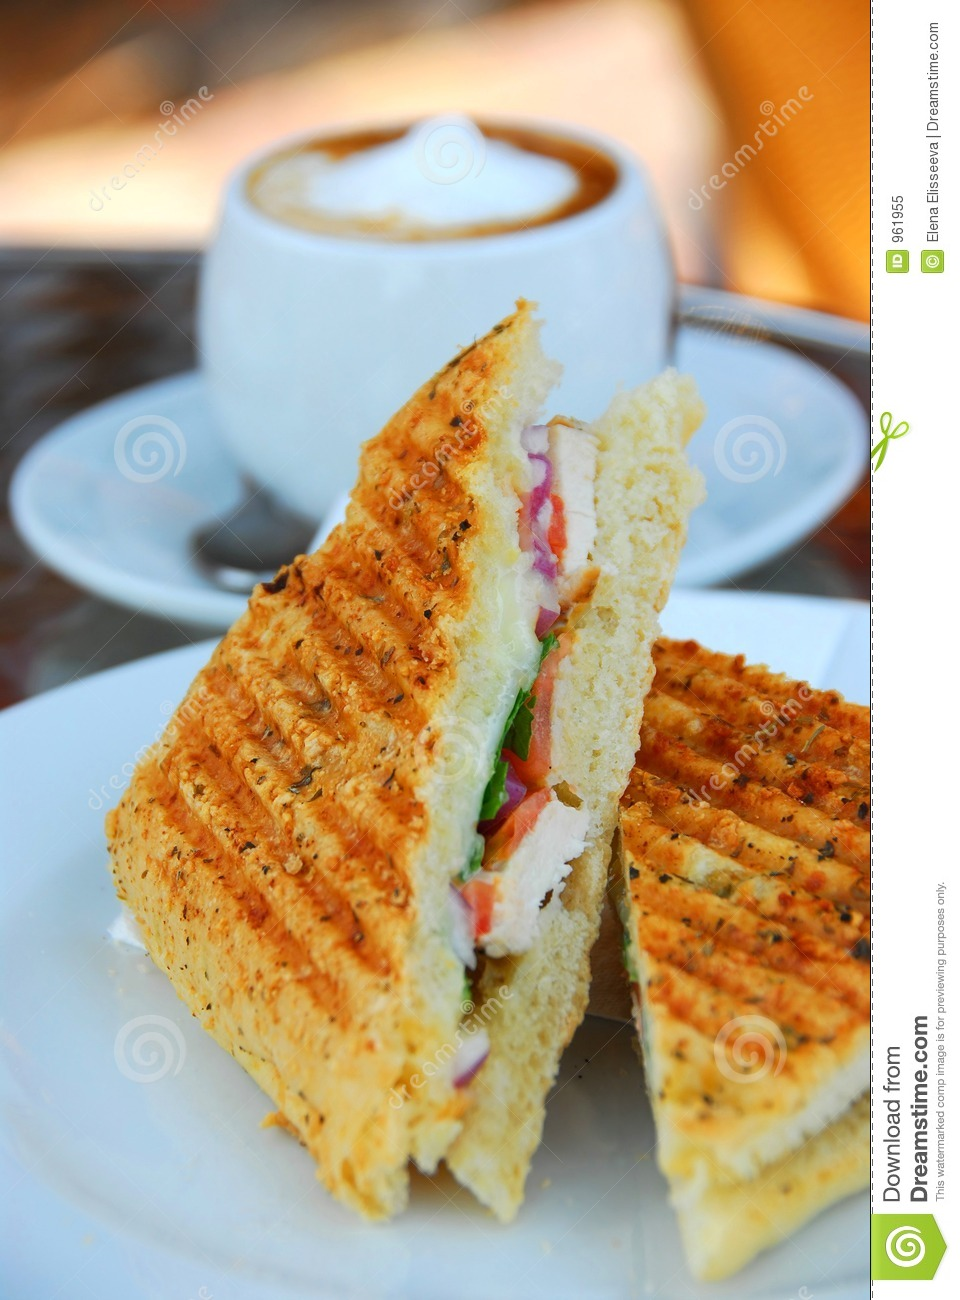 Grilled Sandwich Royalty Free Stock Photo - Image: 961955